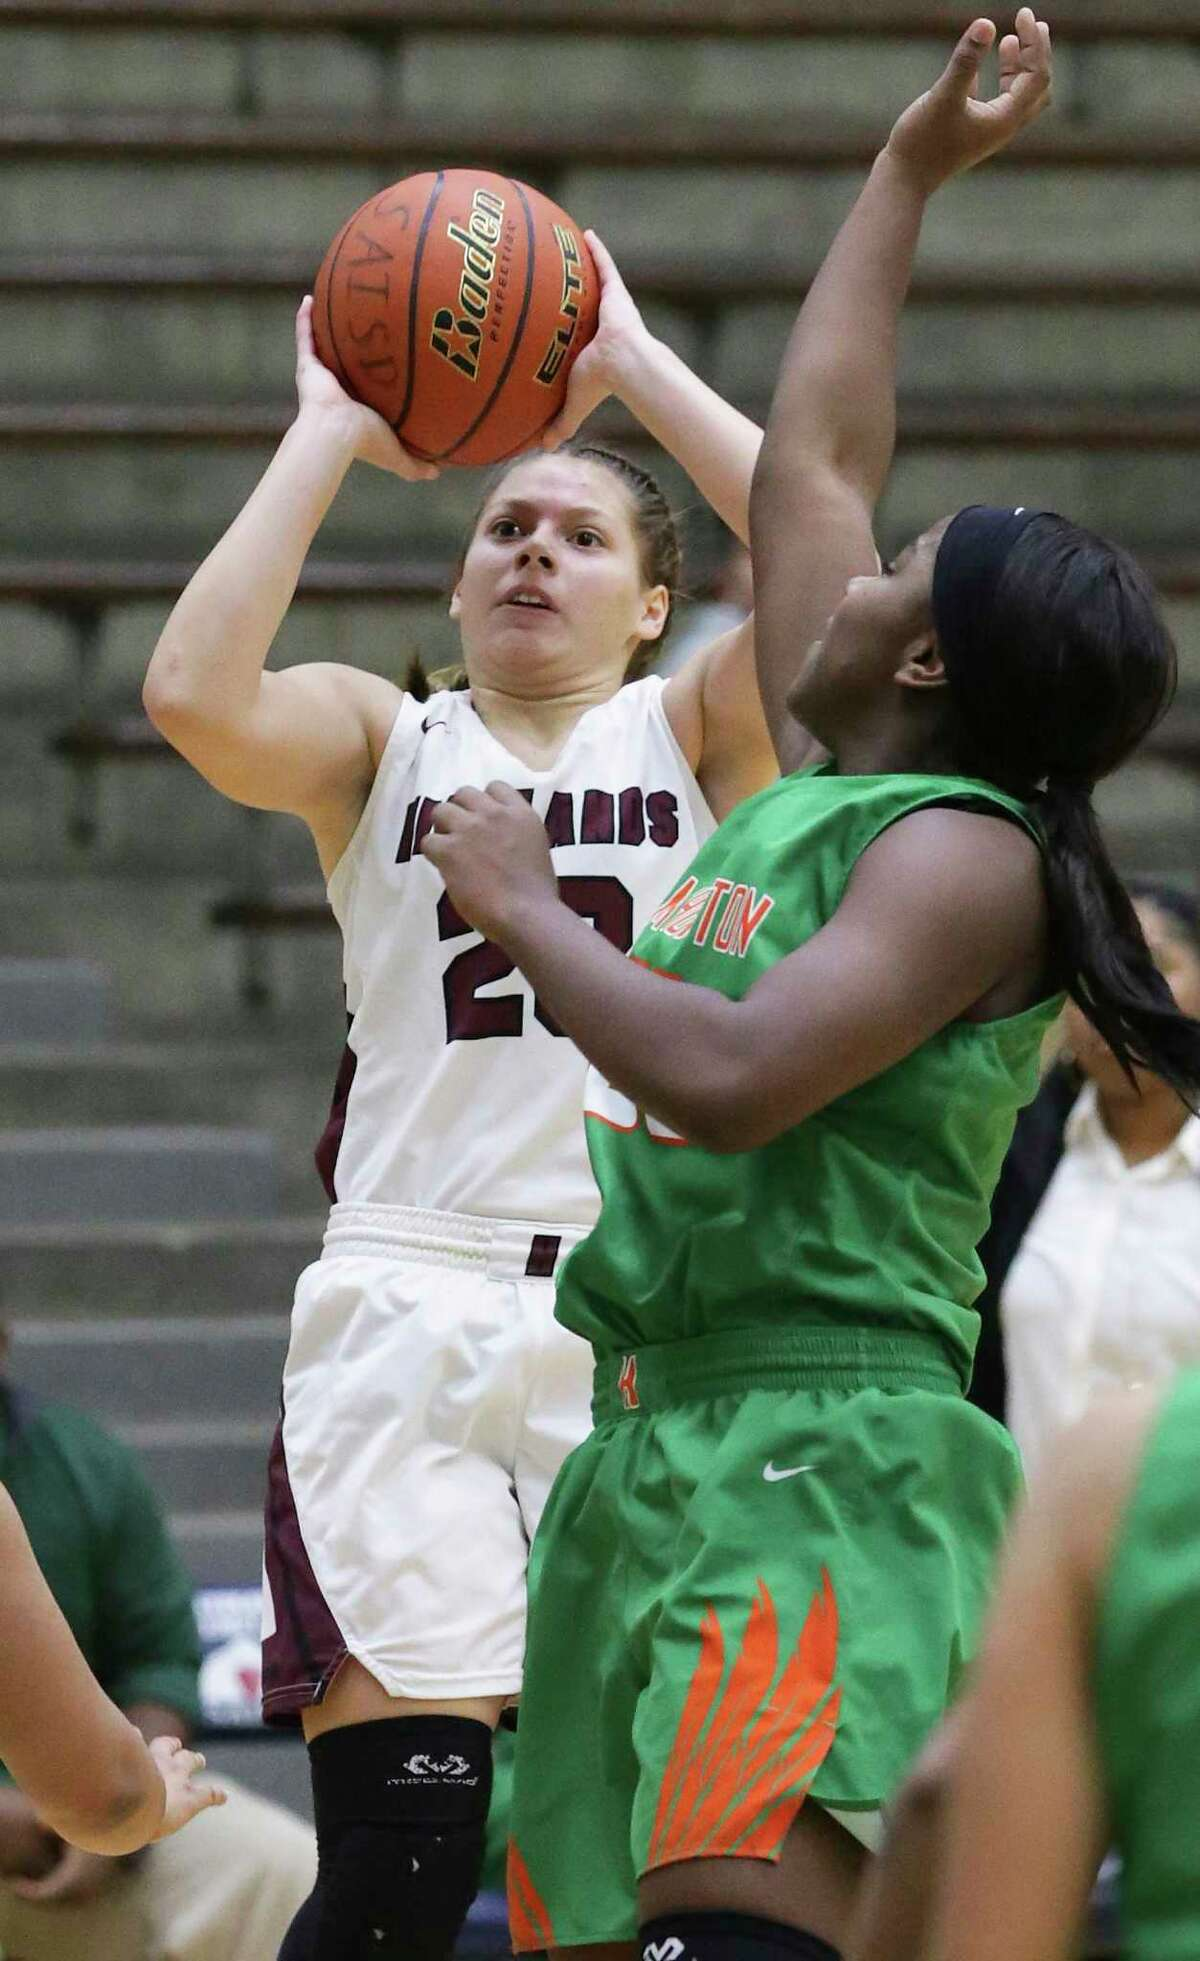 Highlands senior Layla Mendoza this week became the 24th area girl to score 2,000 career points.